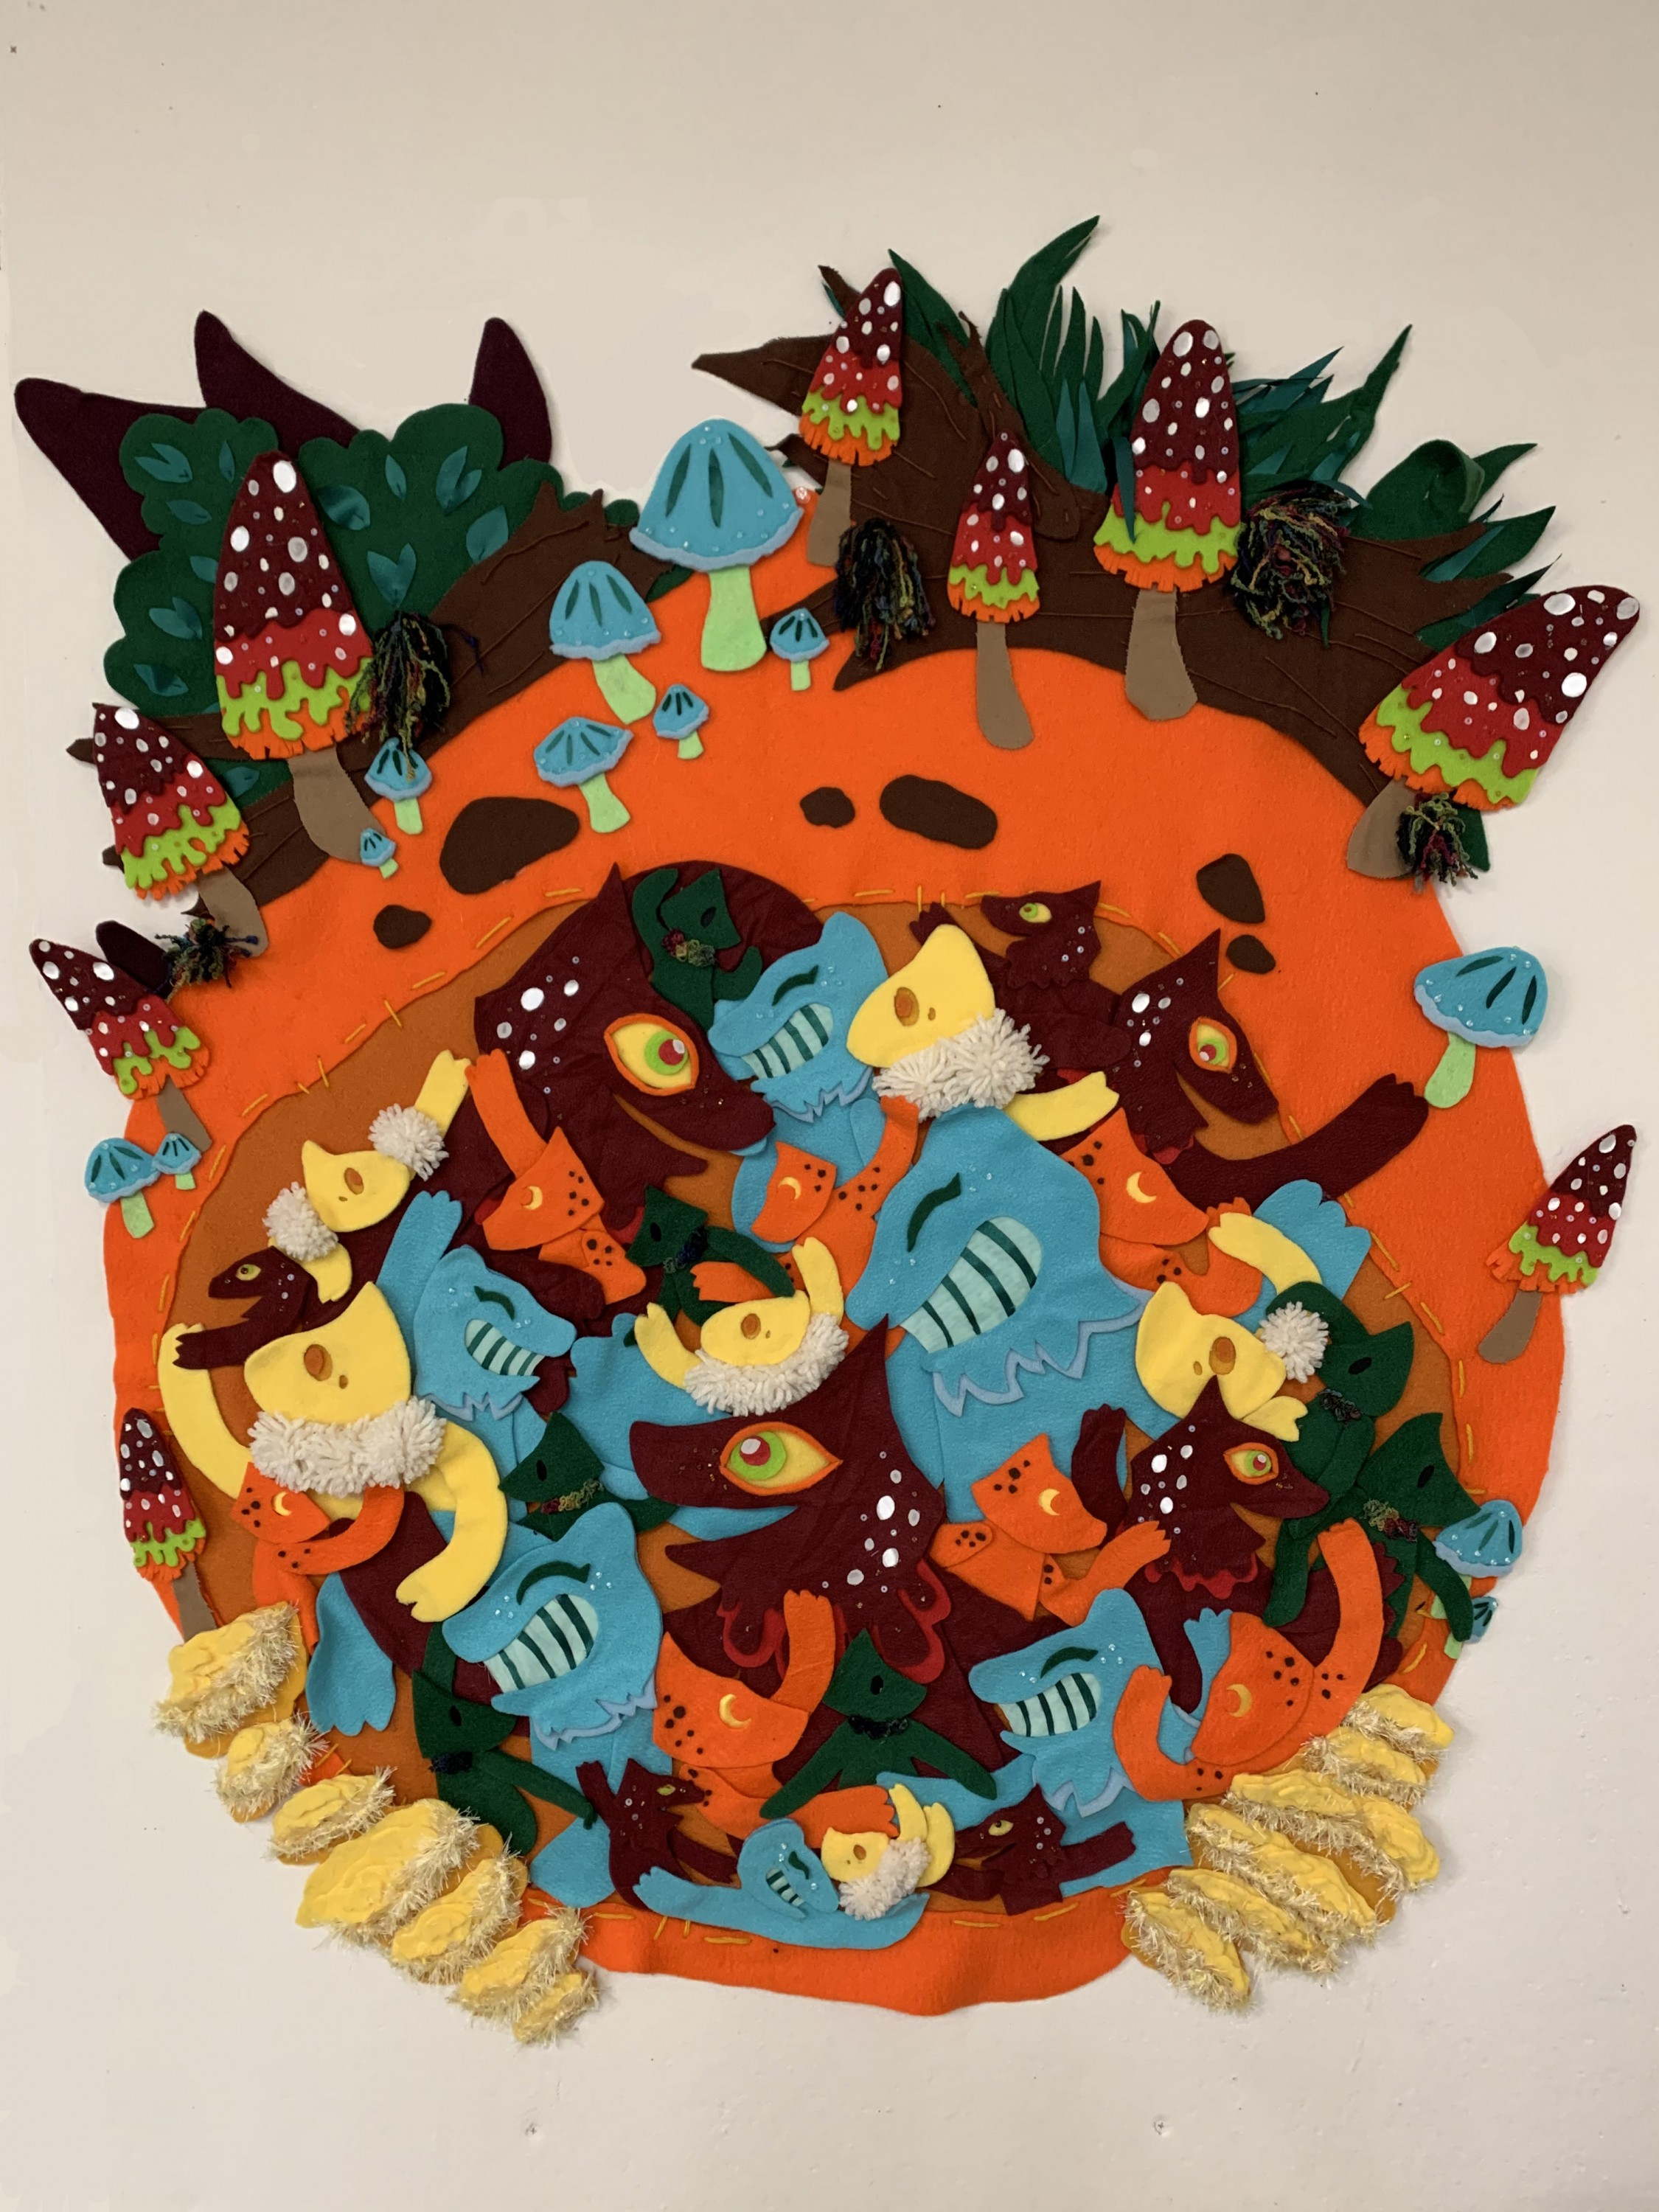 A large circular piece made with bright orange fabric, decorated with grass, logs, and mushrooms at the top. At the bottom there are clusters of yellow oyster mushrooms. The circle is cut out in the middle and has a darker orange background, and in the cu